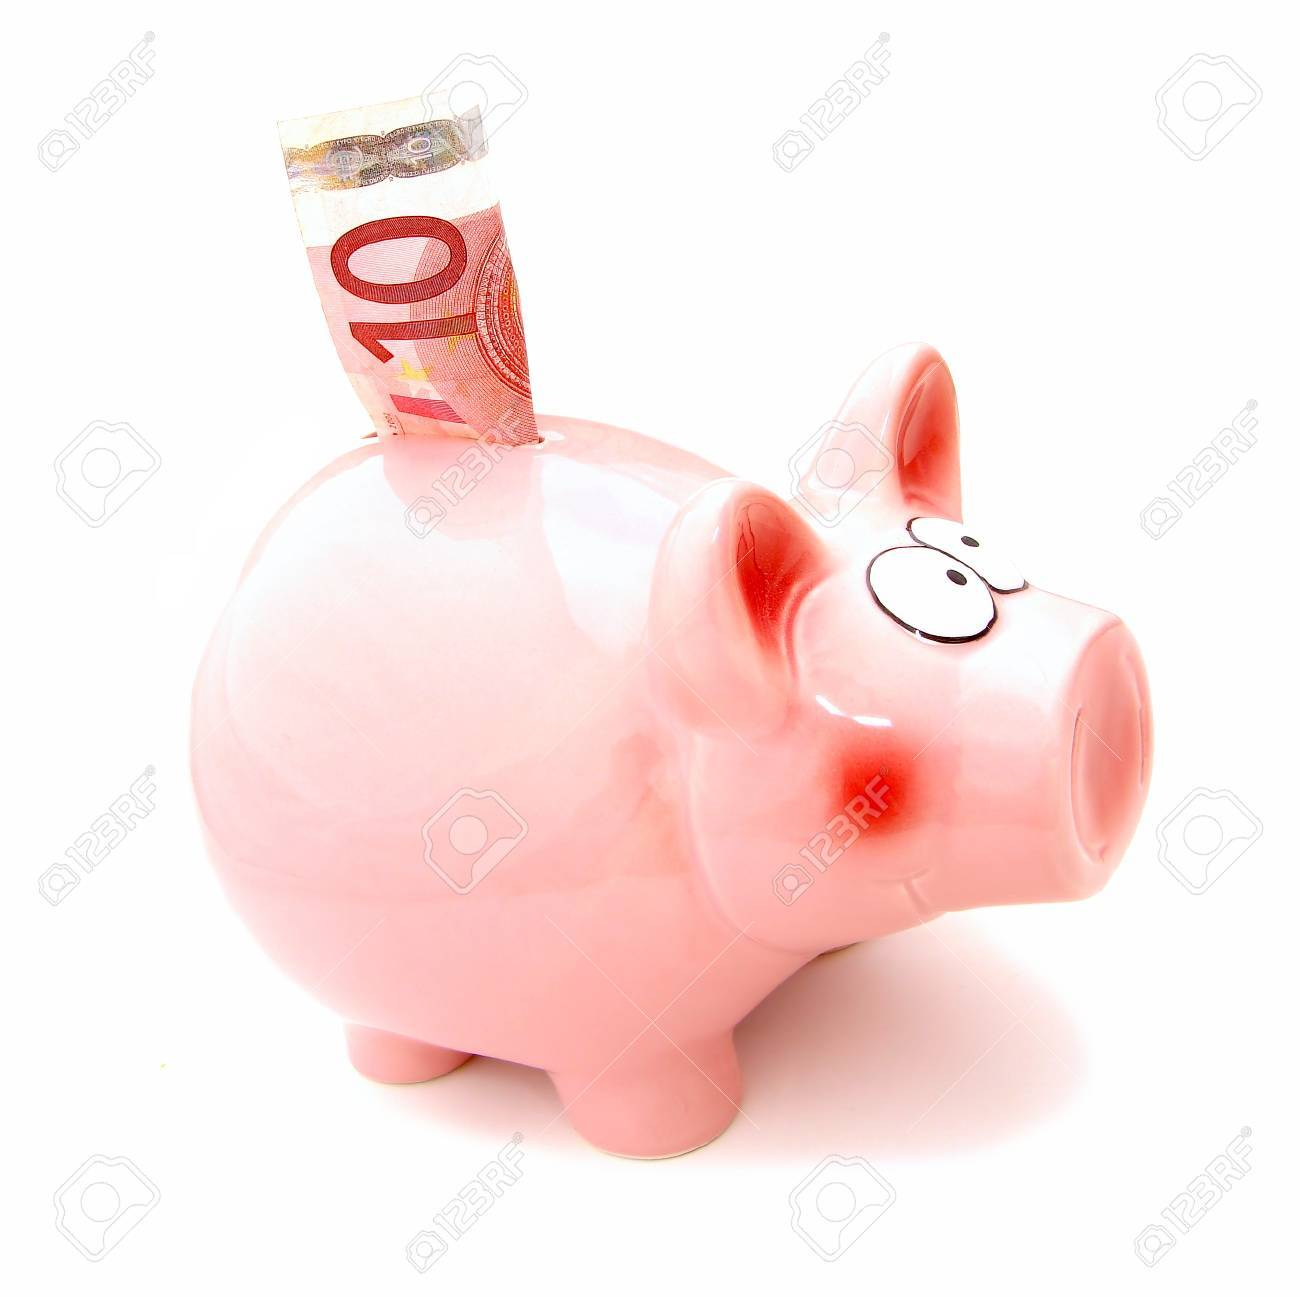 Piggy bank with 10 denomination bill in its slot Stock Photo - 10304171